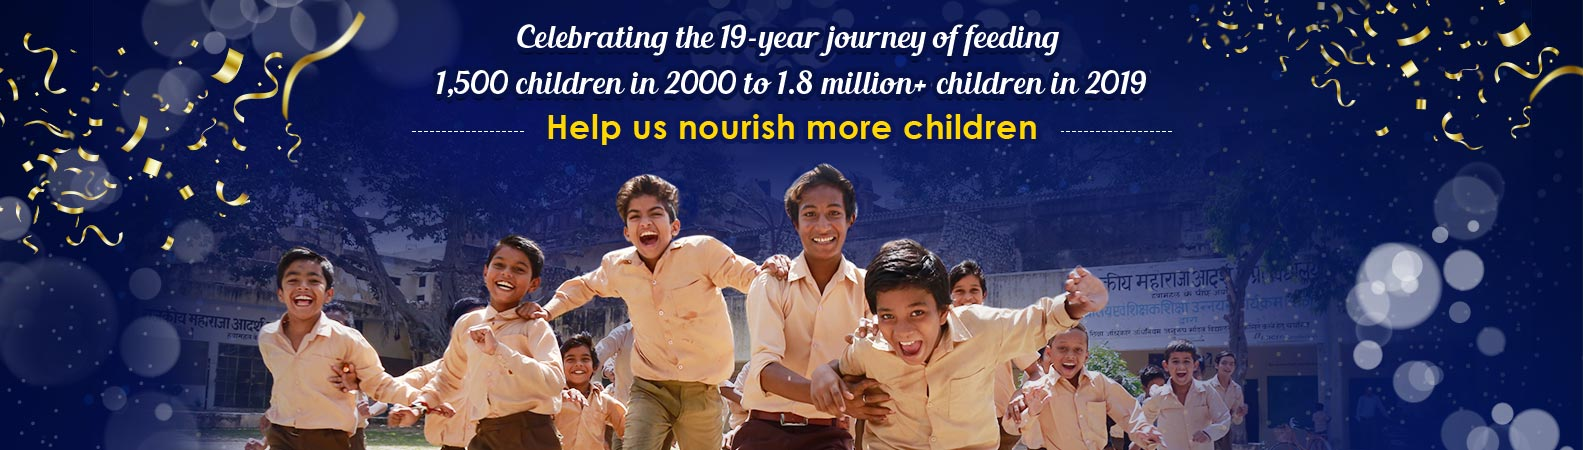 Rs. 1,100 CAN FEED ONE CHILD FOR AN ENTIRE SCHOOL YEAR